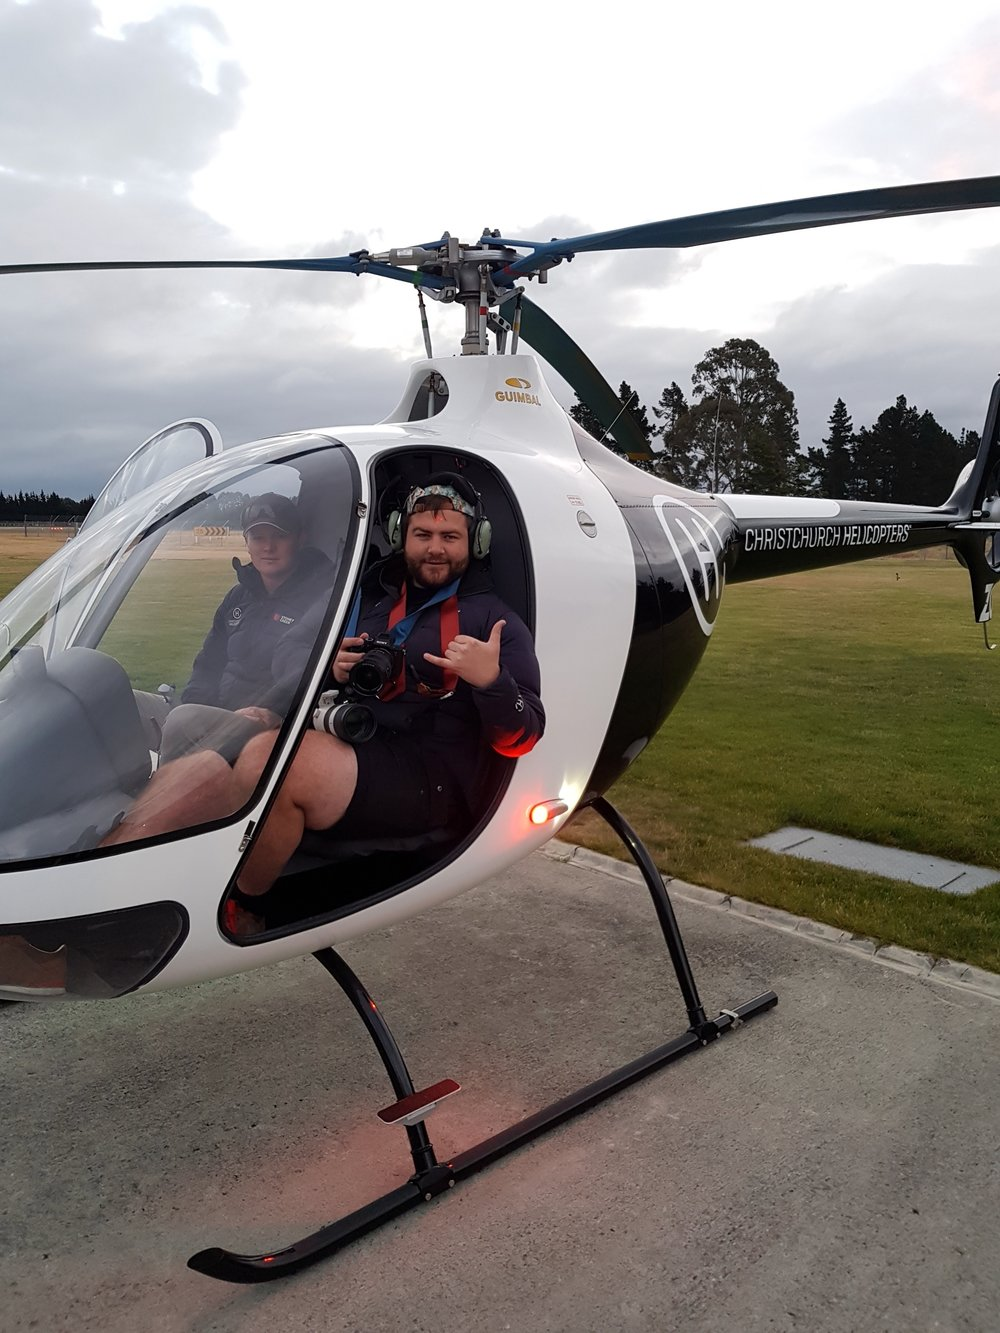 Talman got to trial a helicopter flight with Christchurch Helicopters